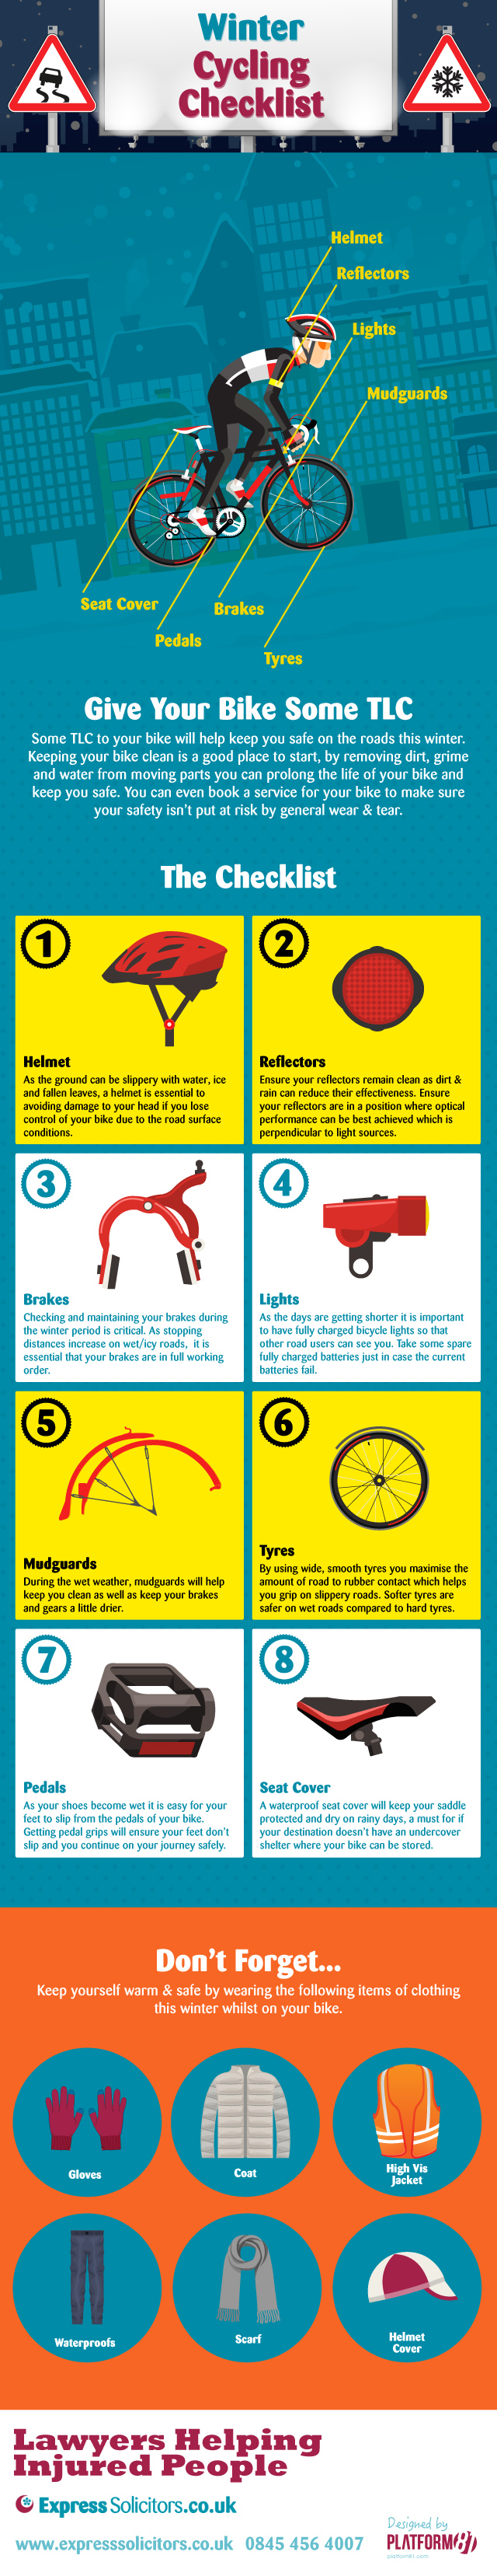 Winter Cycling Checklist #infographic #Winter #Cycling #Checklist